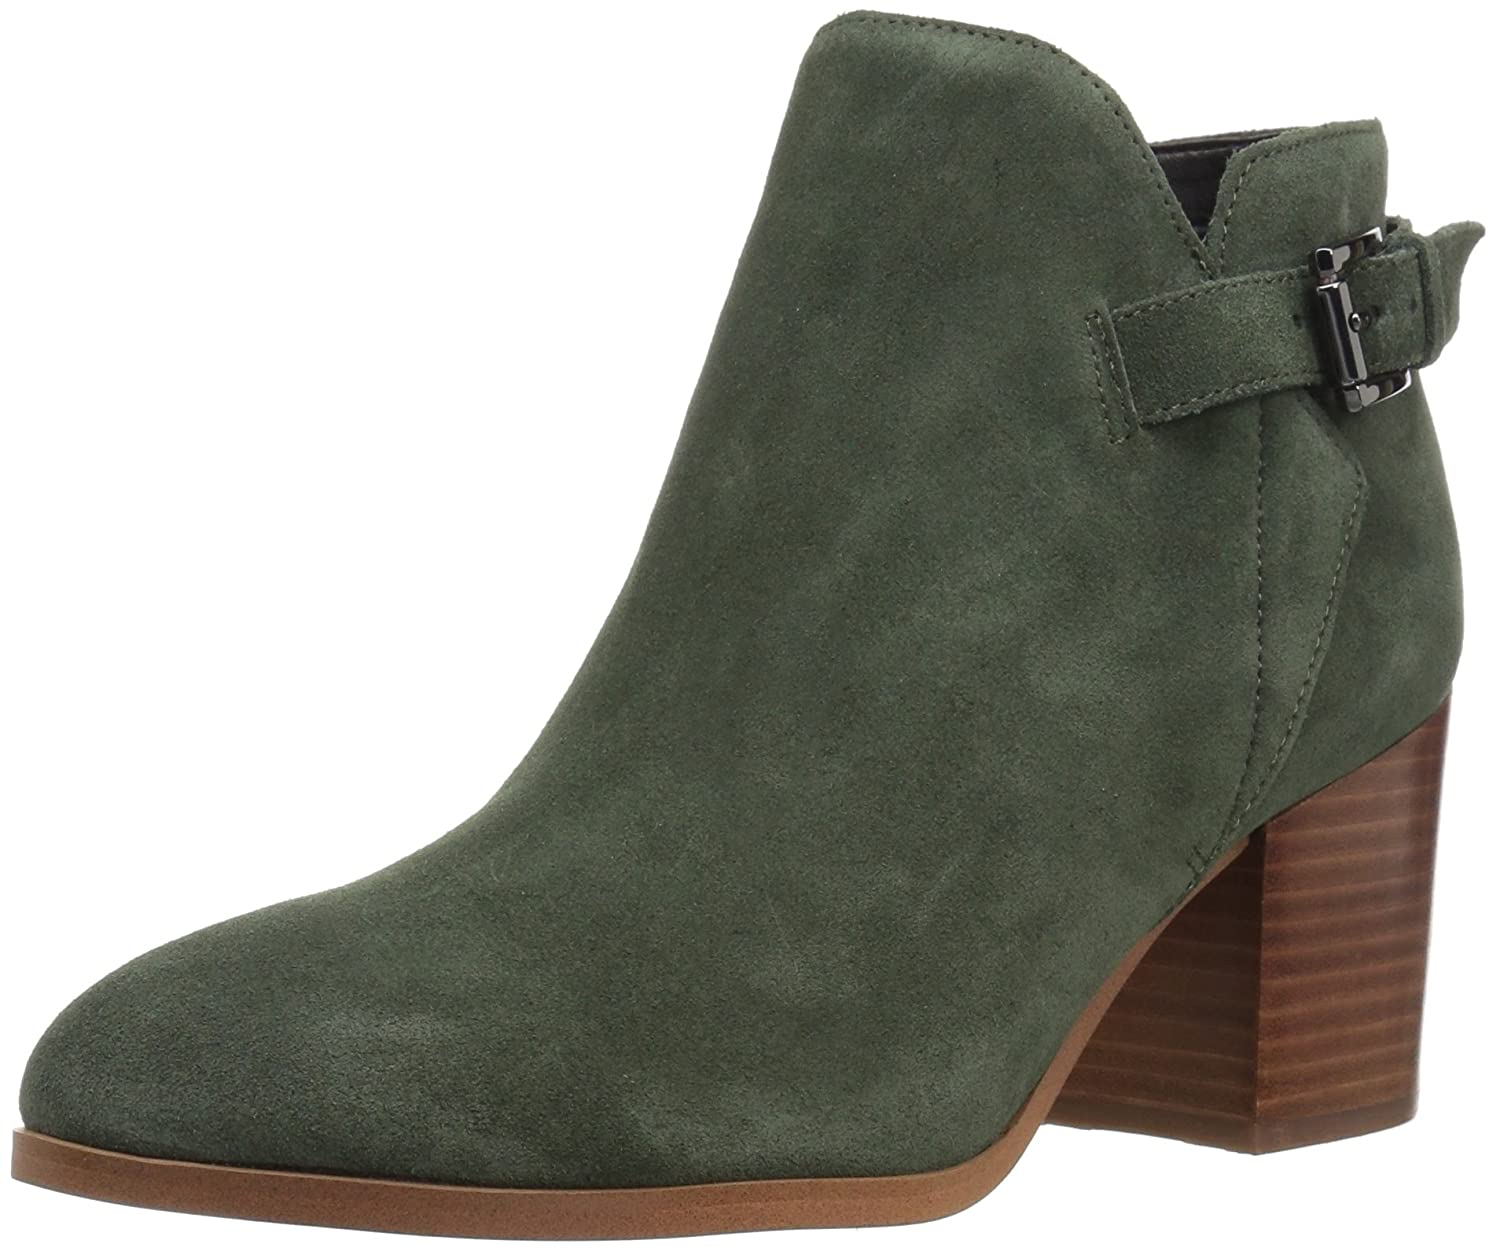 Marc Fisher Women's Vandy Ankle Boot B071S68P3S 9.5 B(M) US|Military